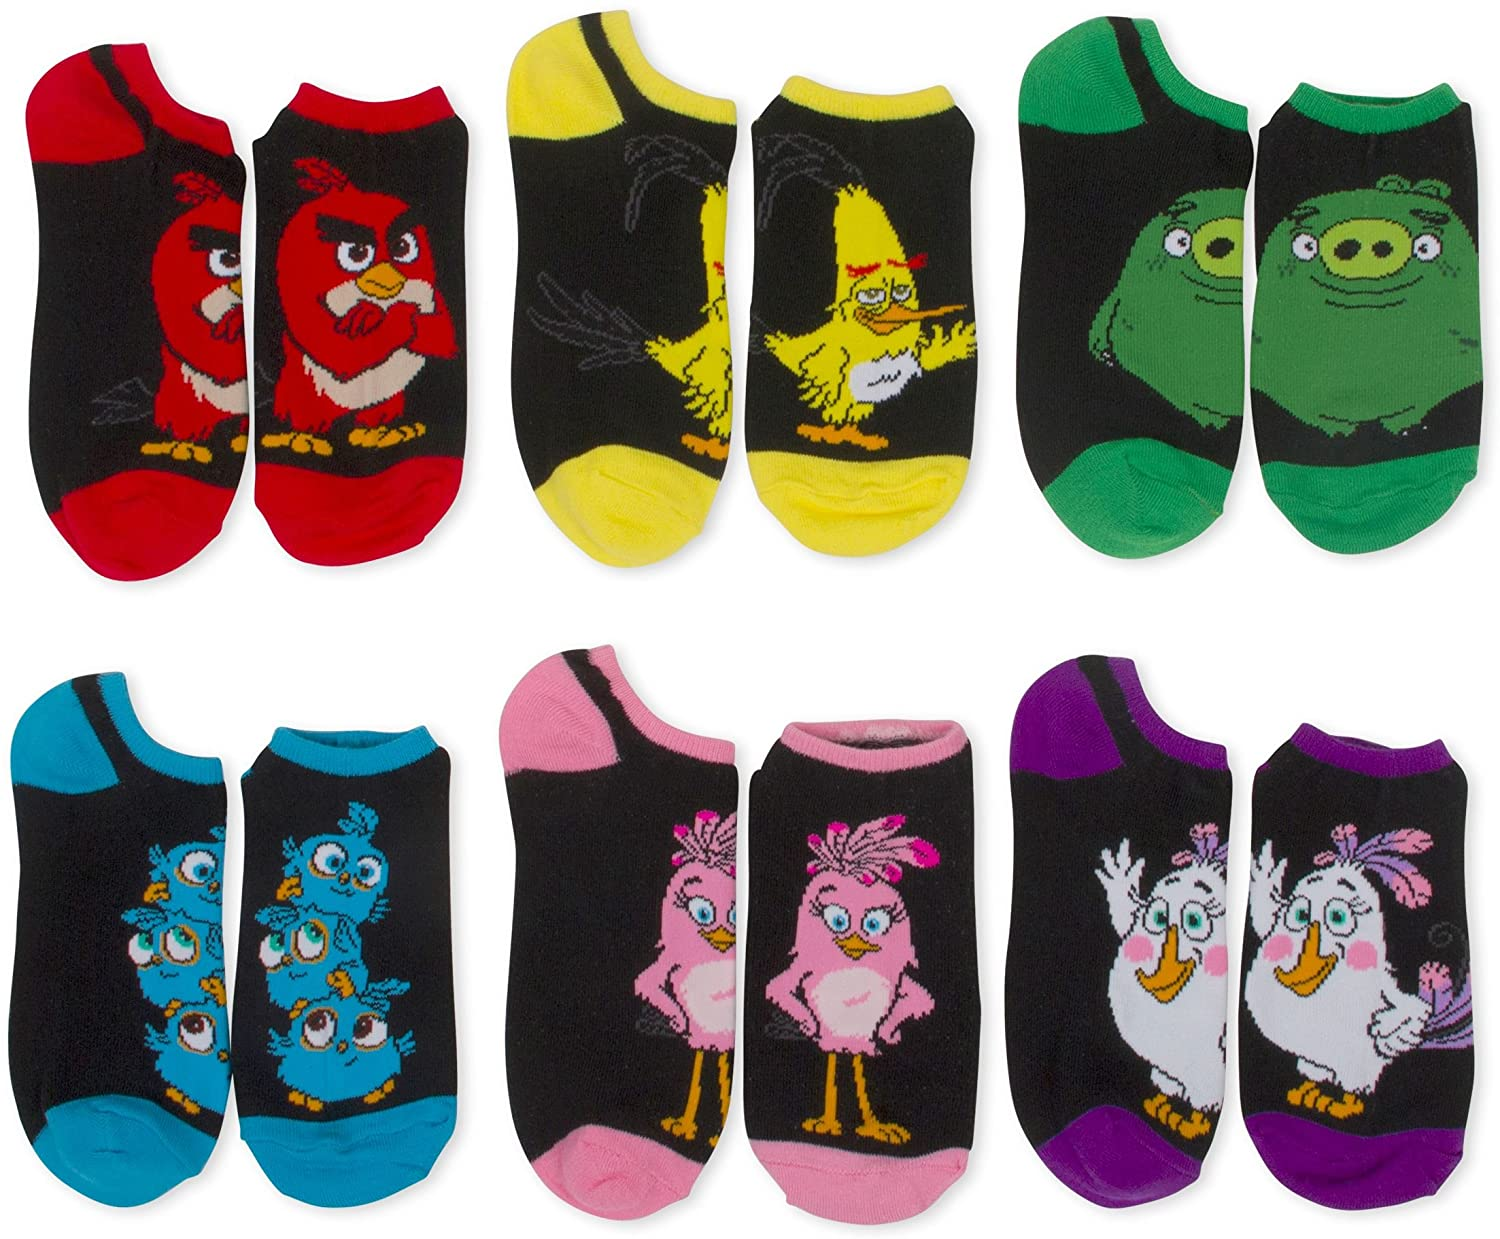 Womens Angry Birds Low Cut No Shows Socks - 6 Pairs